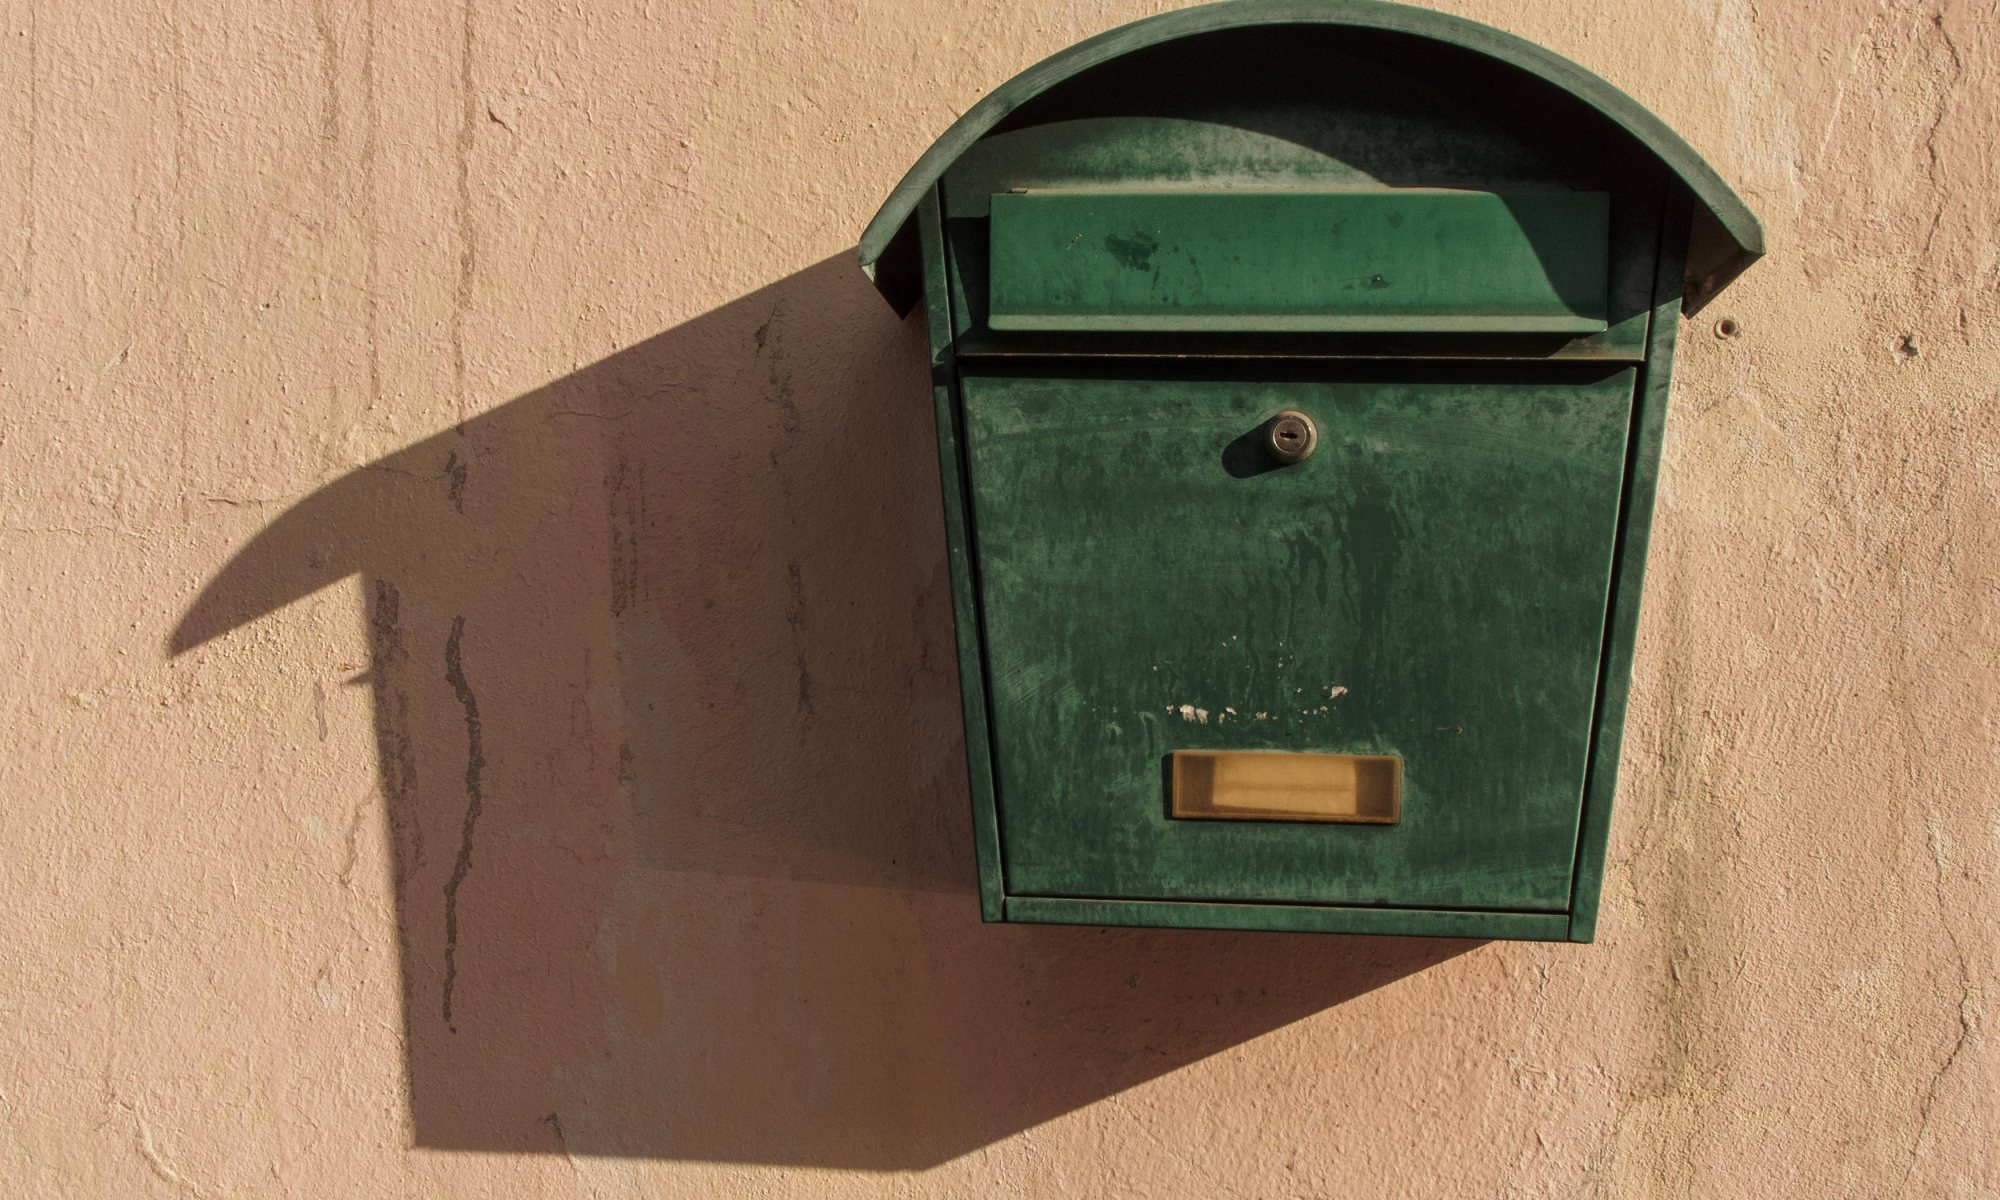 Green mailbox. The old green mailbox on the wall with big shadow.